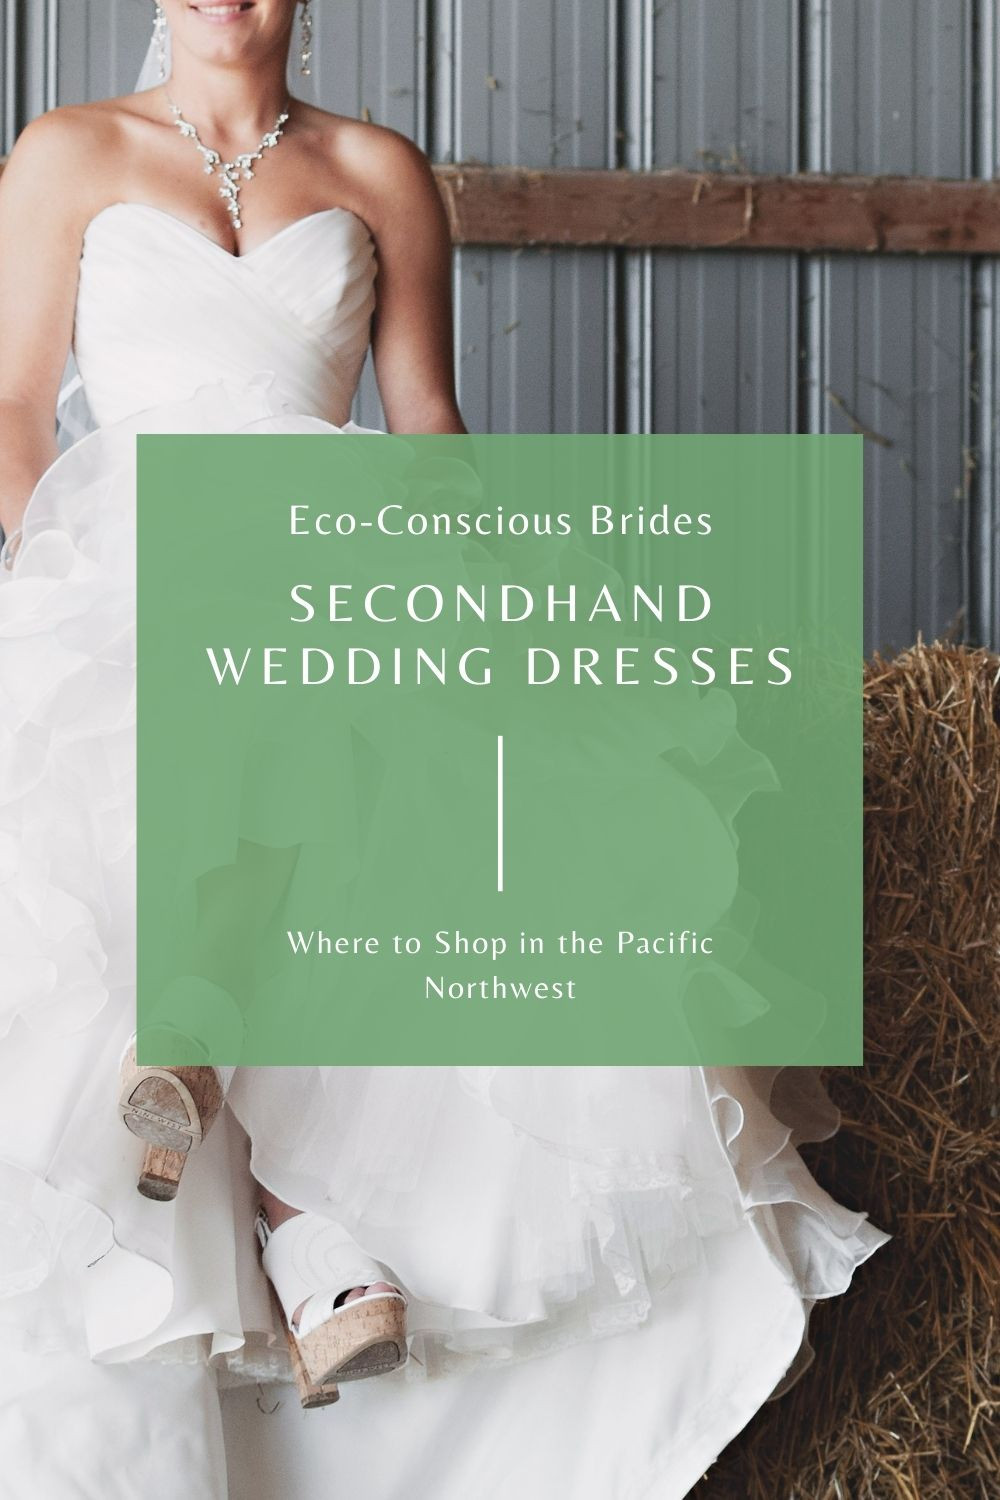 secondhand wedding dresses where to buy in the Pacific Northwest Pinterest Pin